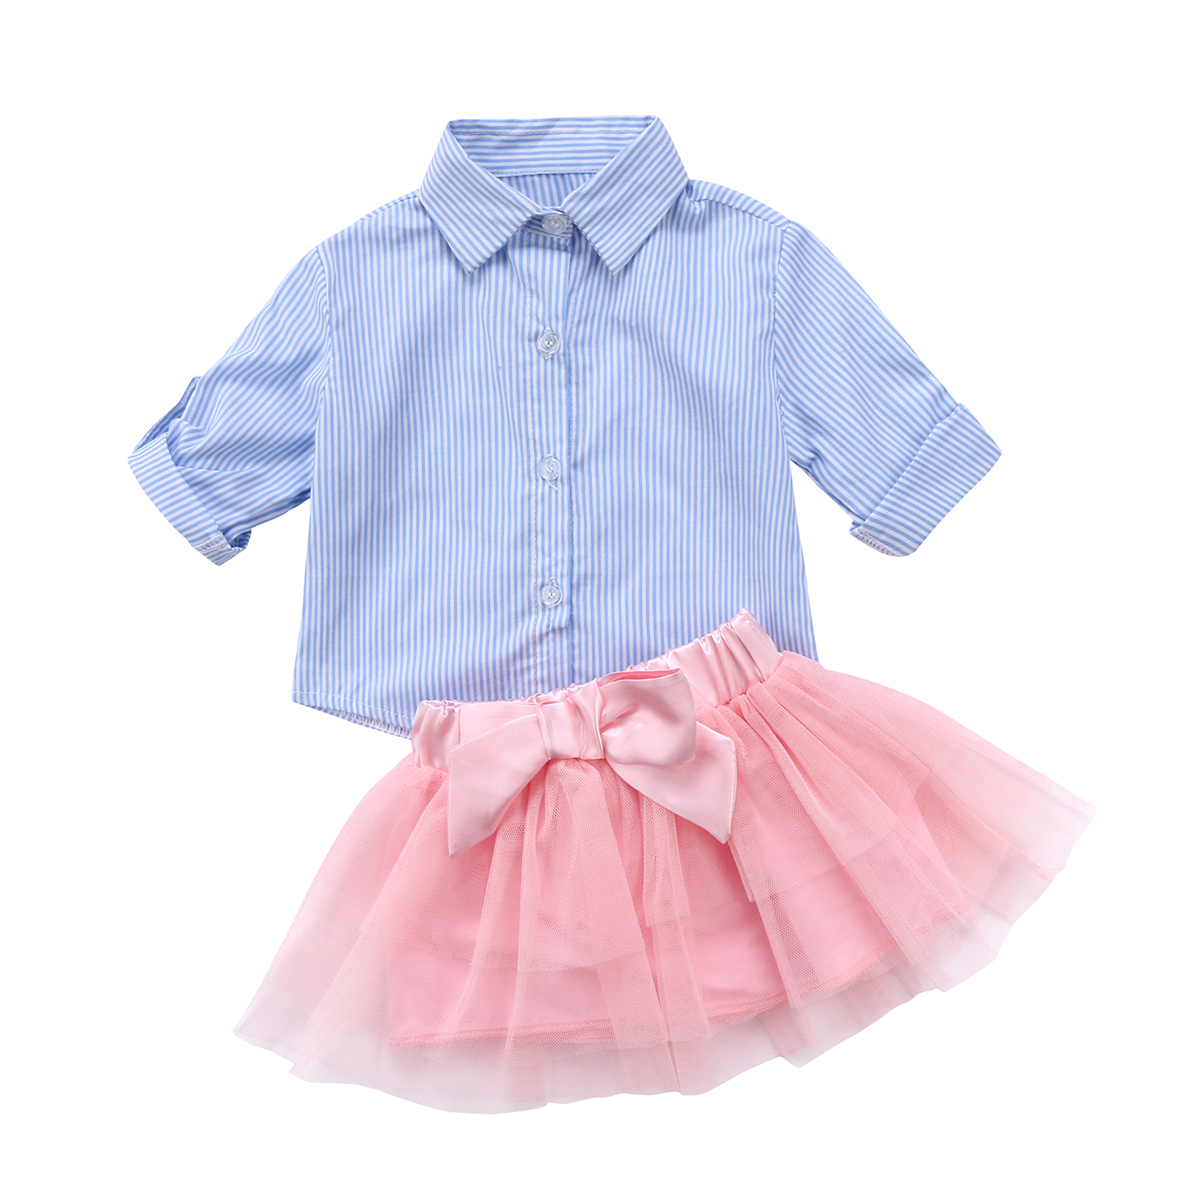 Newborn Infant Cute Baby Girls Long Sleeve Striped Lace Dress+Hat Outfit Clothes Set